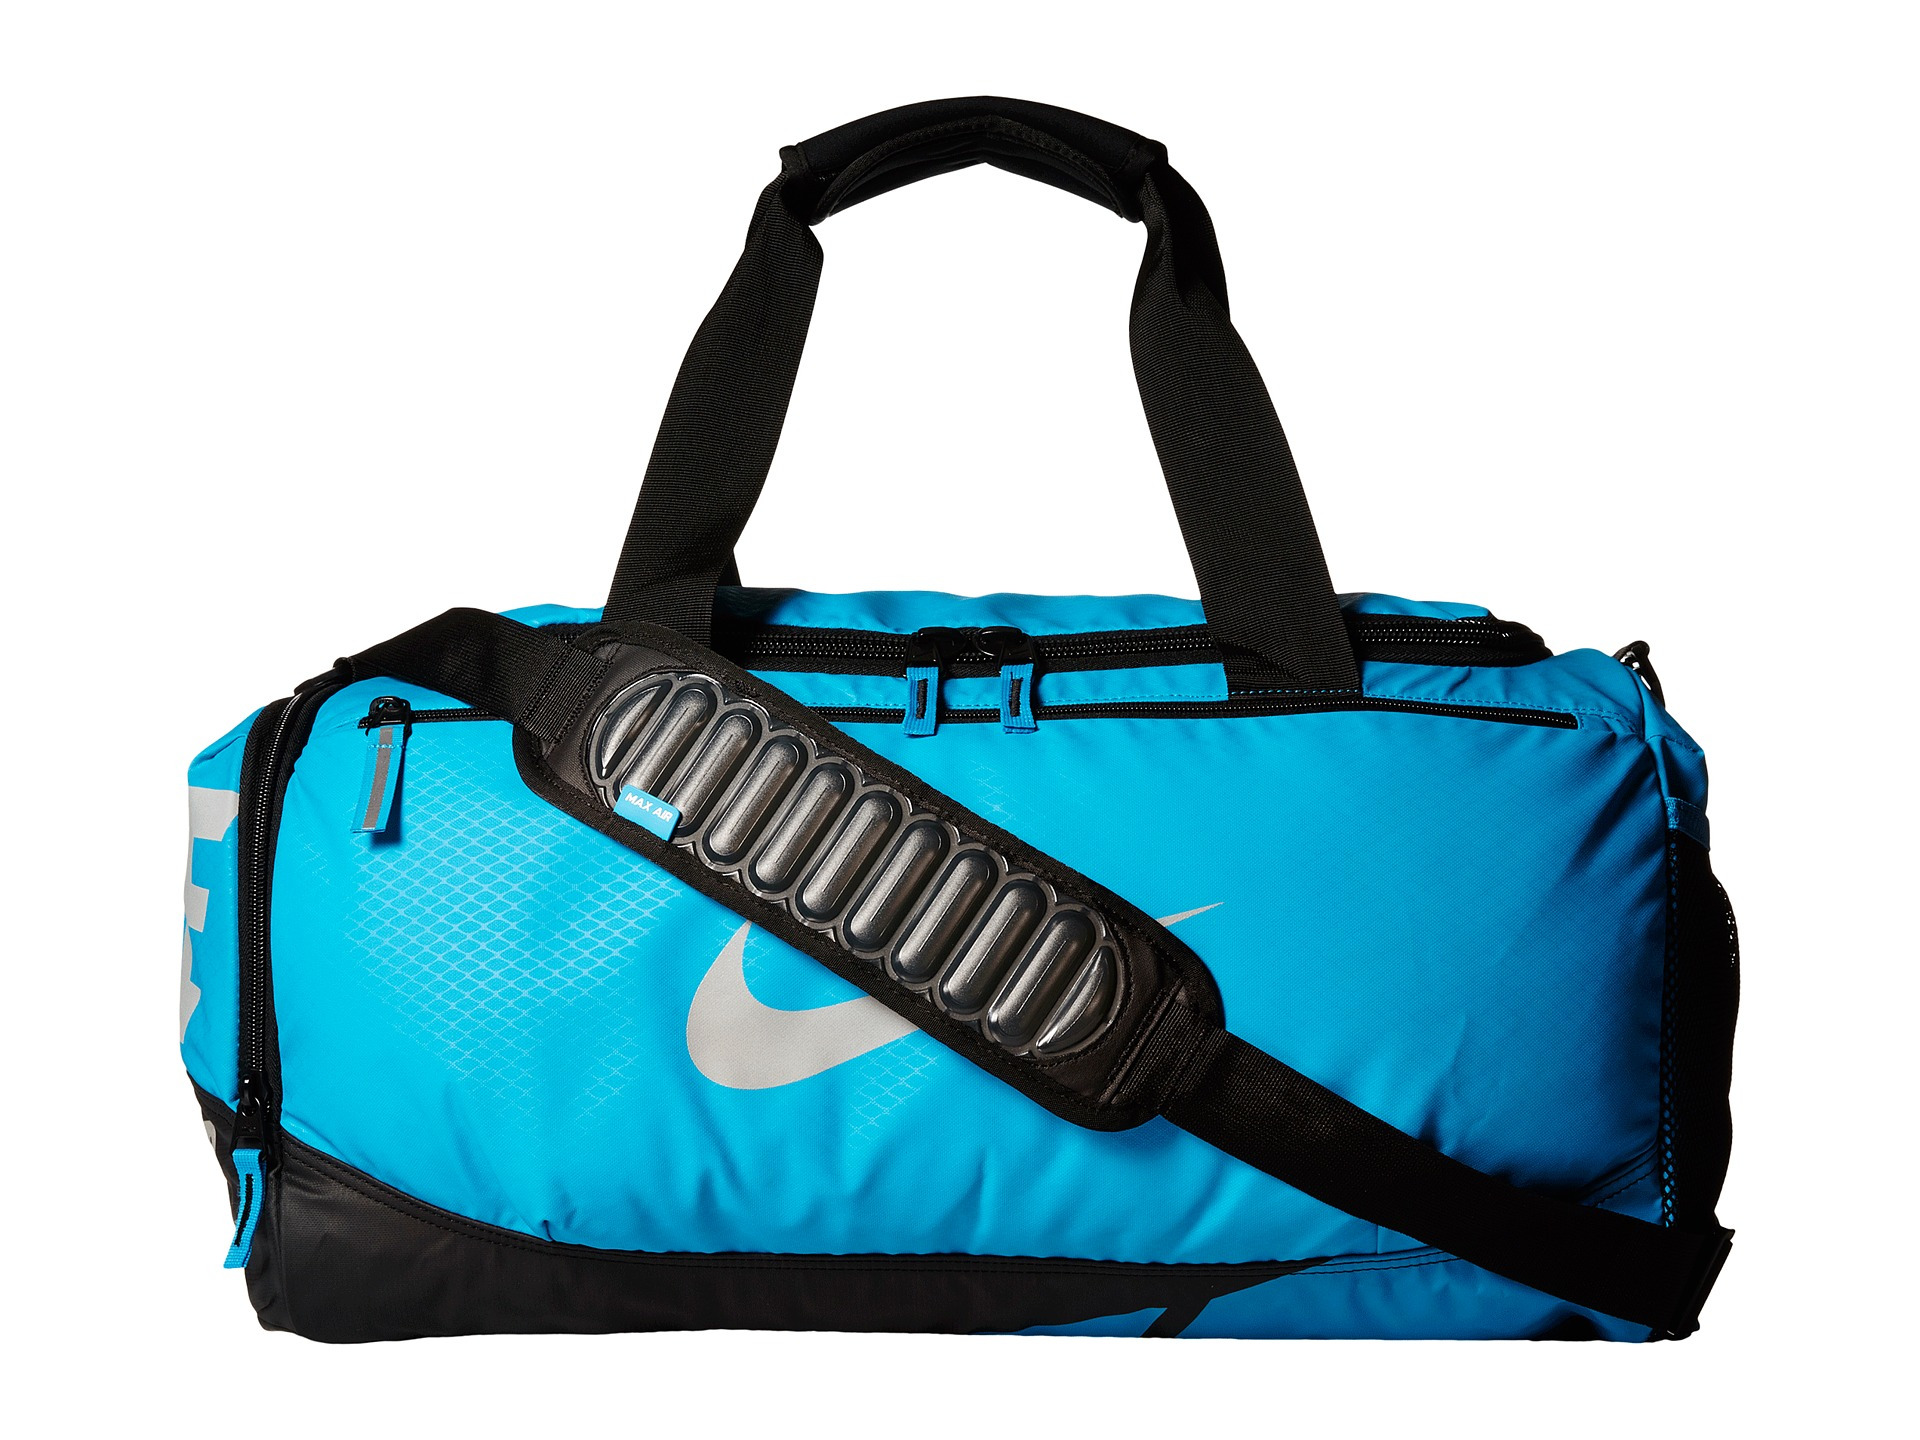 Lyst - Nike Vapor Max Air Small Duffel in Blue for Men f497819416c74